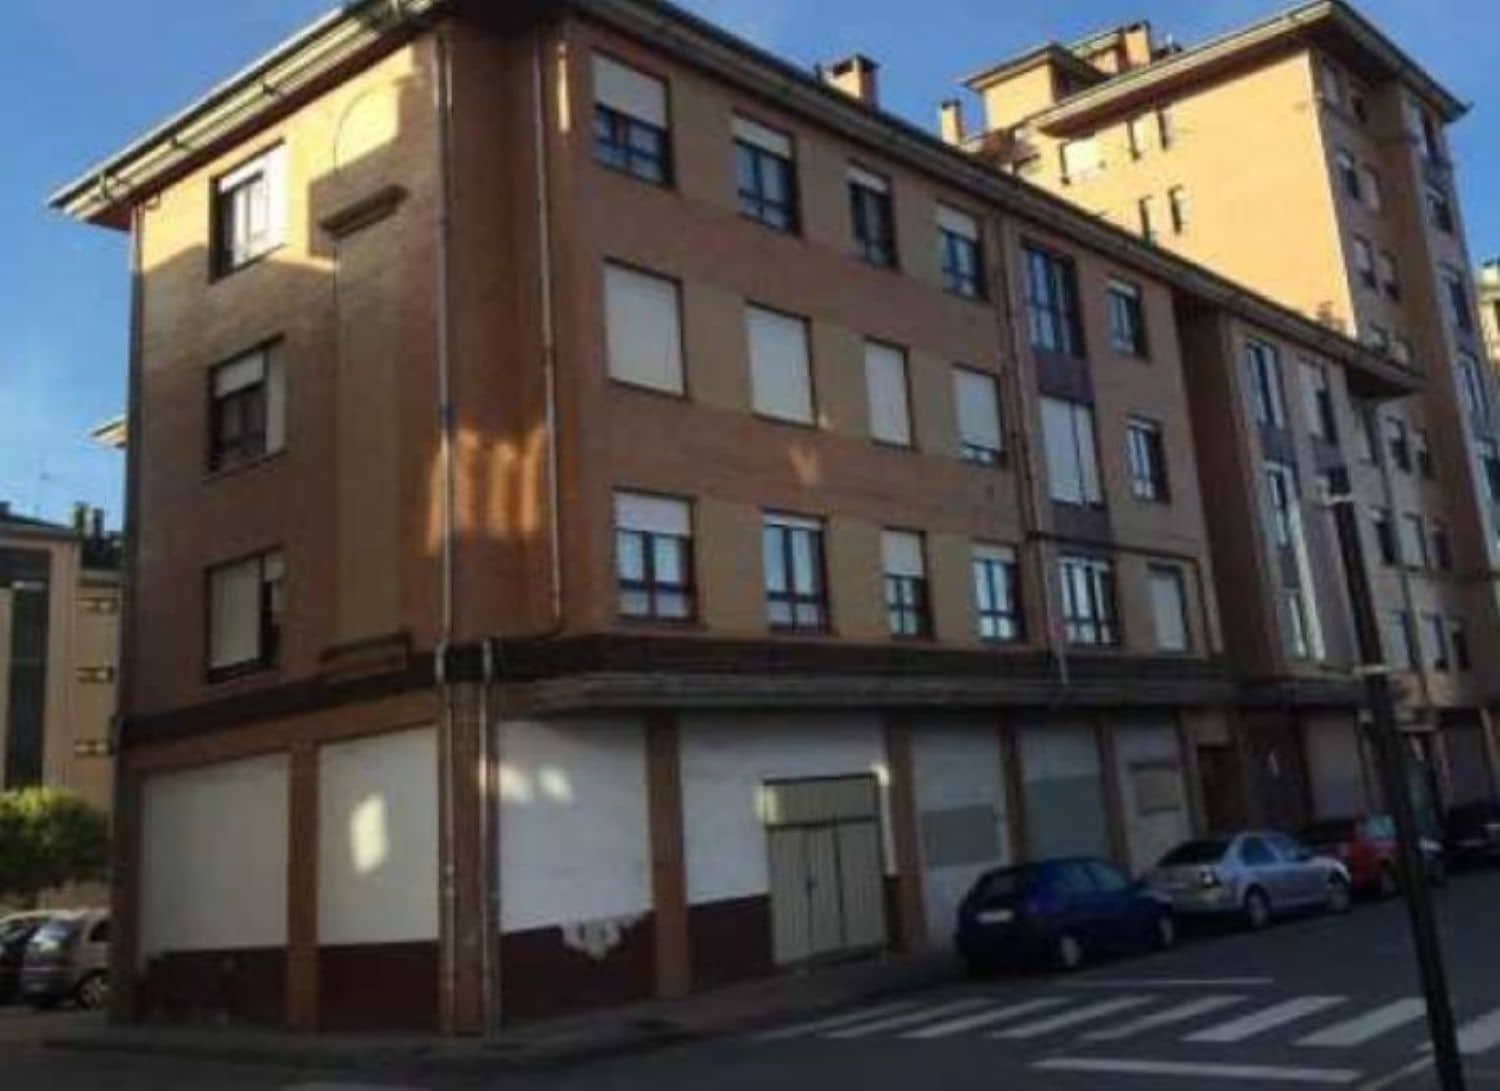 Commercial for sale in Siero - € 98,000 (Ref: 4156202)